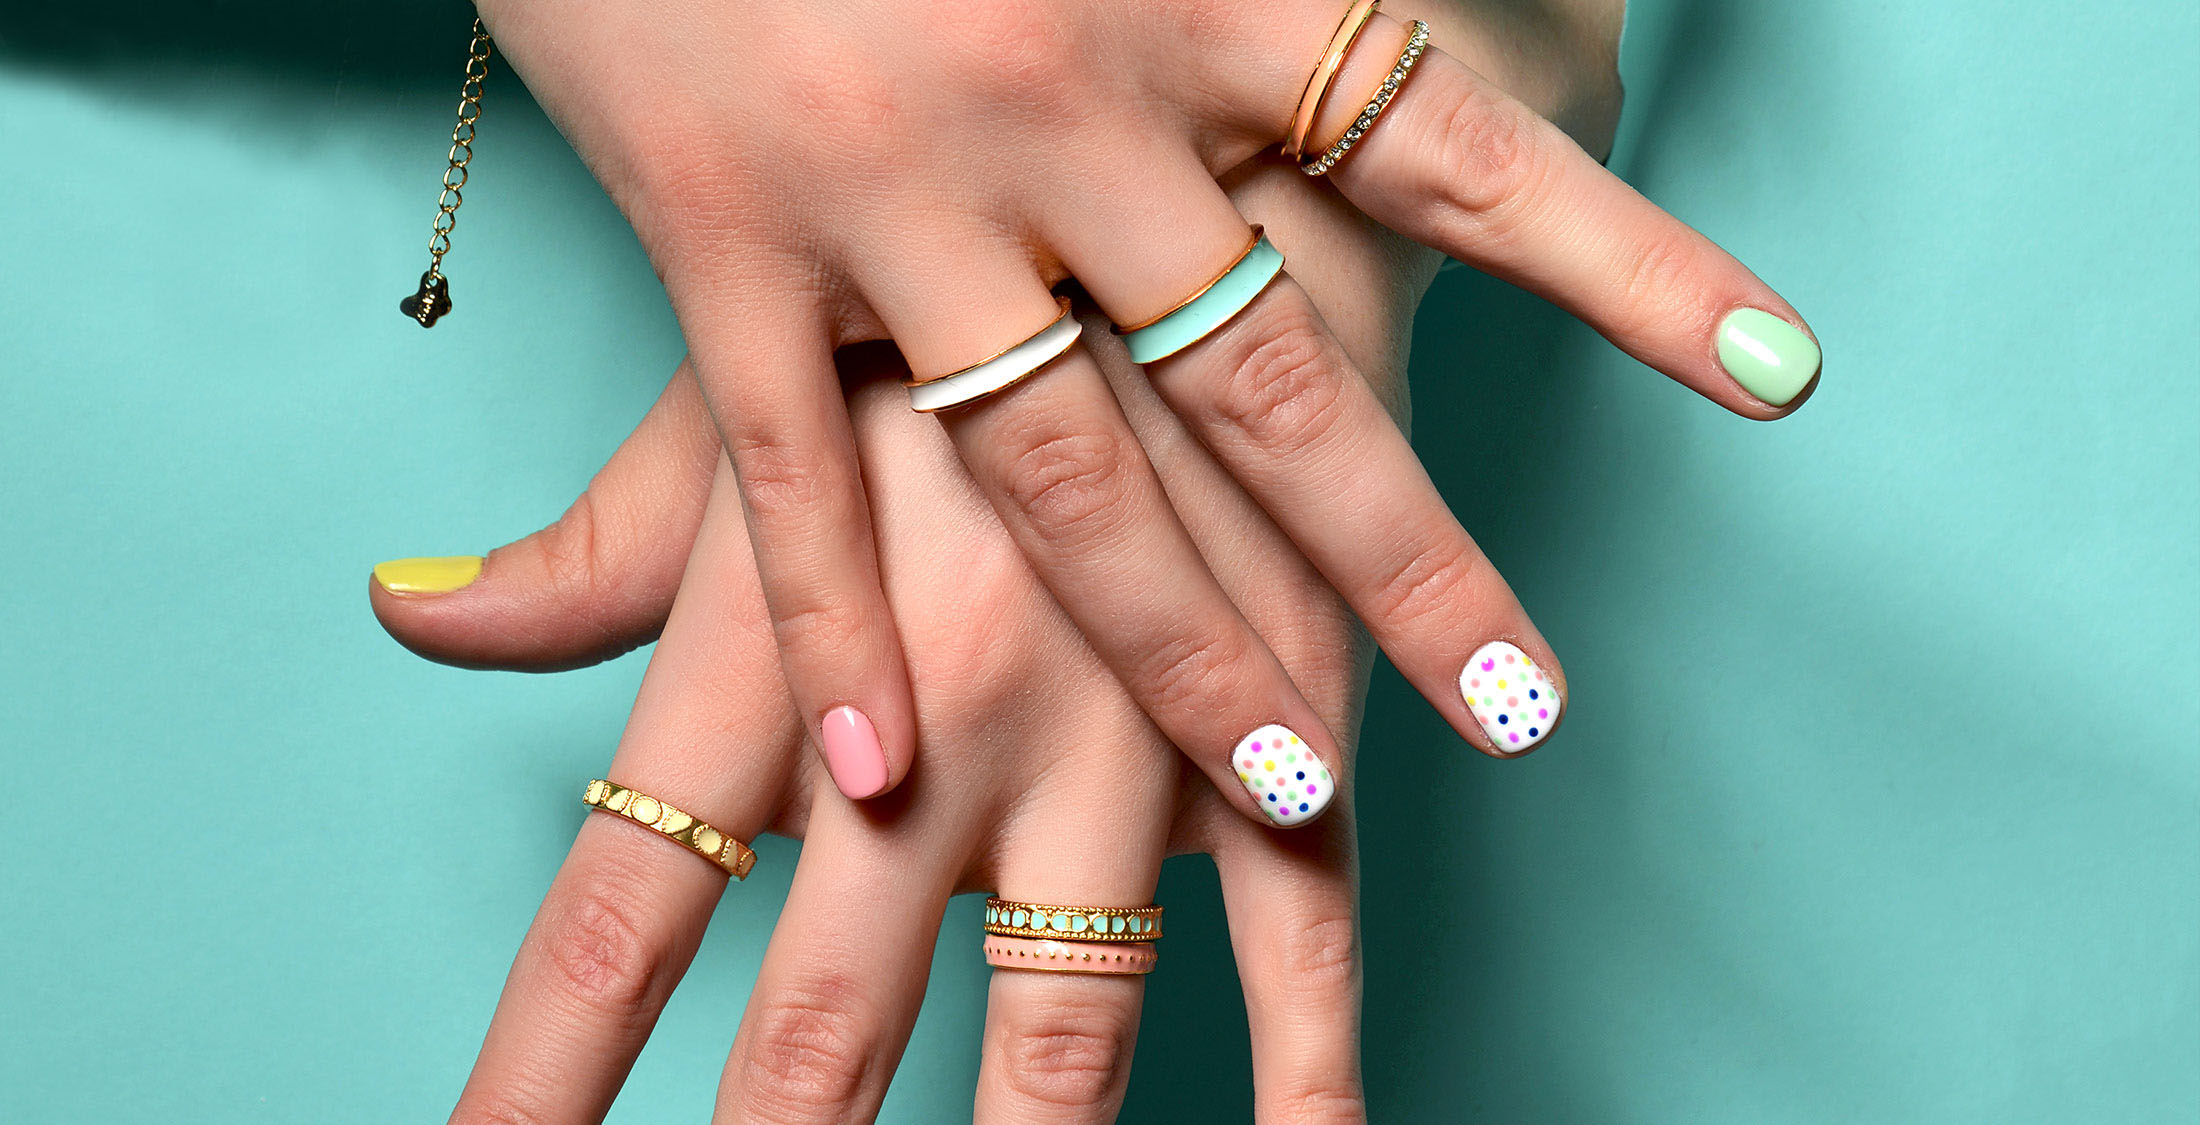 women's hands with different color rings